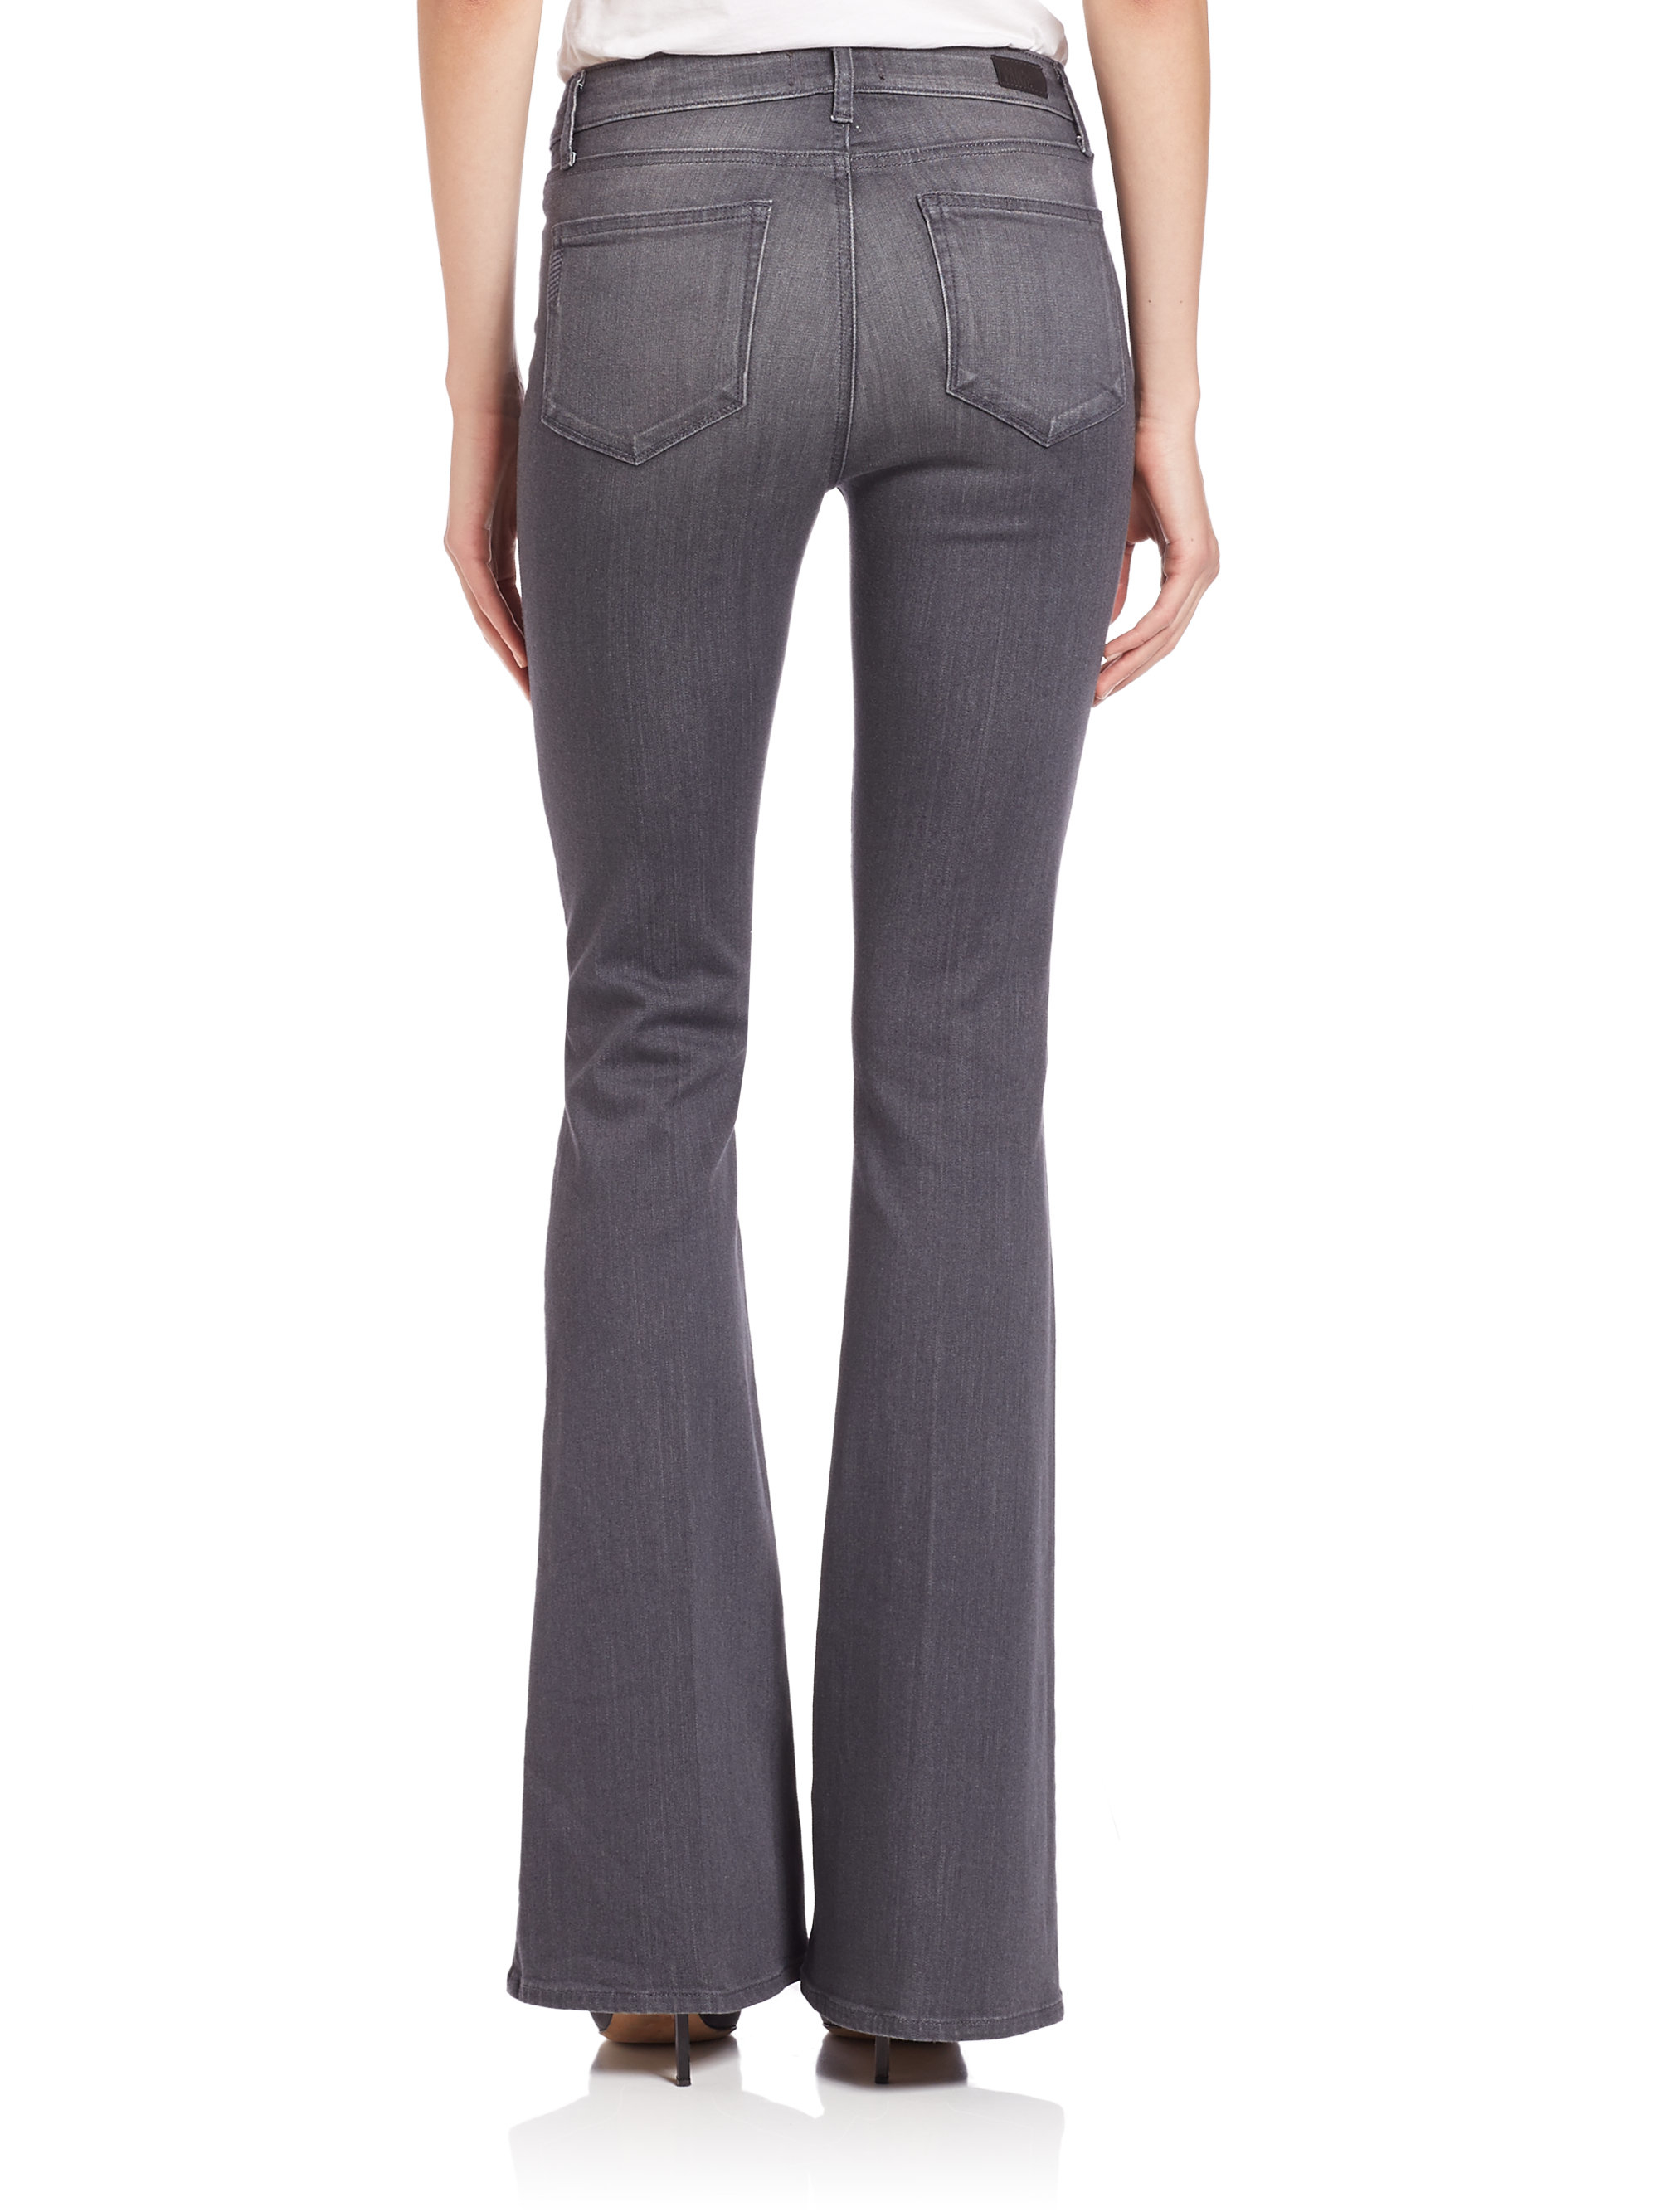 Paige Bell Canyon High-rise Flared Jeans in Gray | Lyst